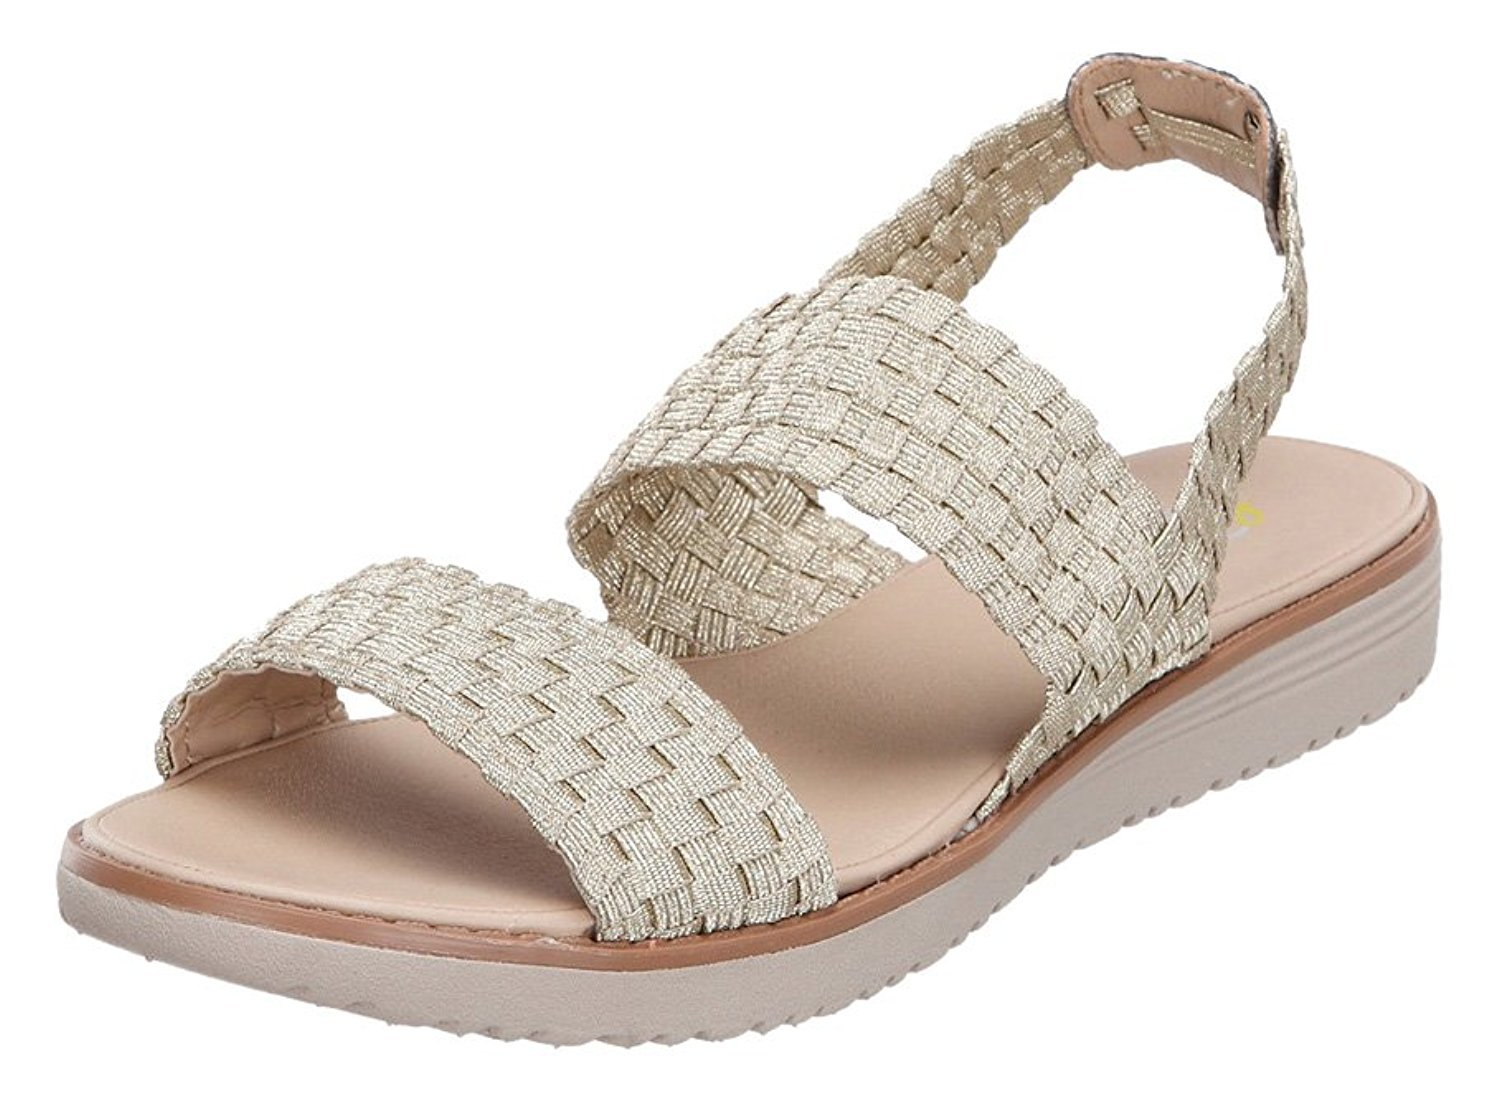 Easy Spirit Womens TALINI Open Toe Casual Slide Sandals, Gold, Size 10.0